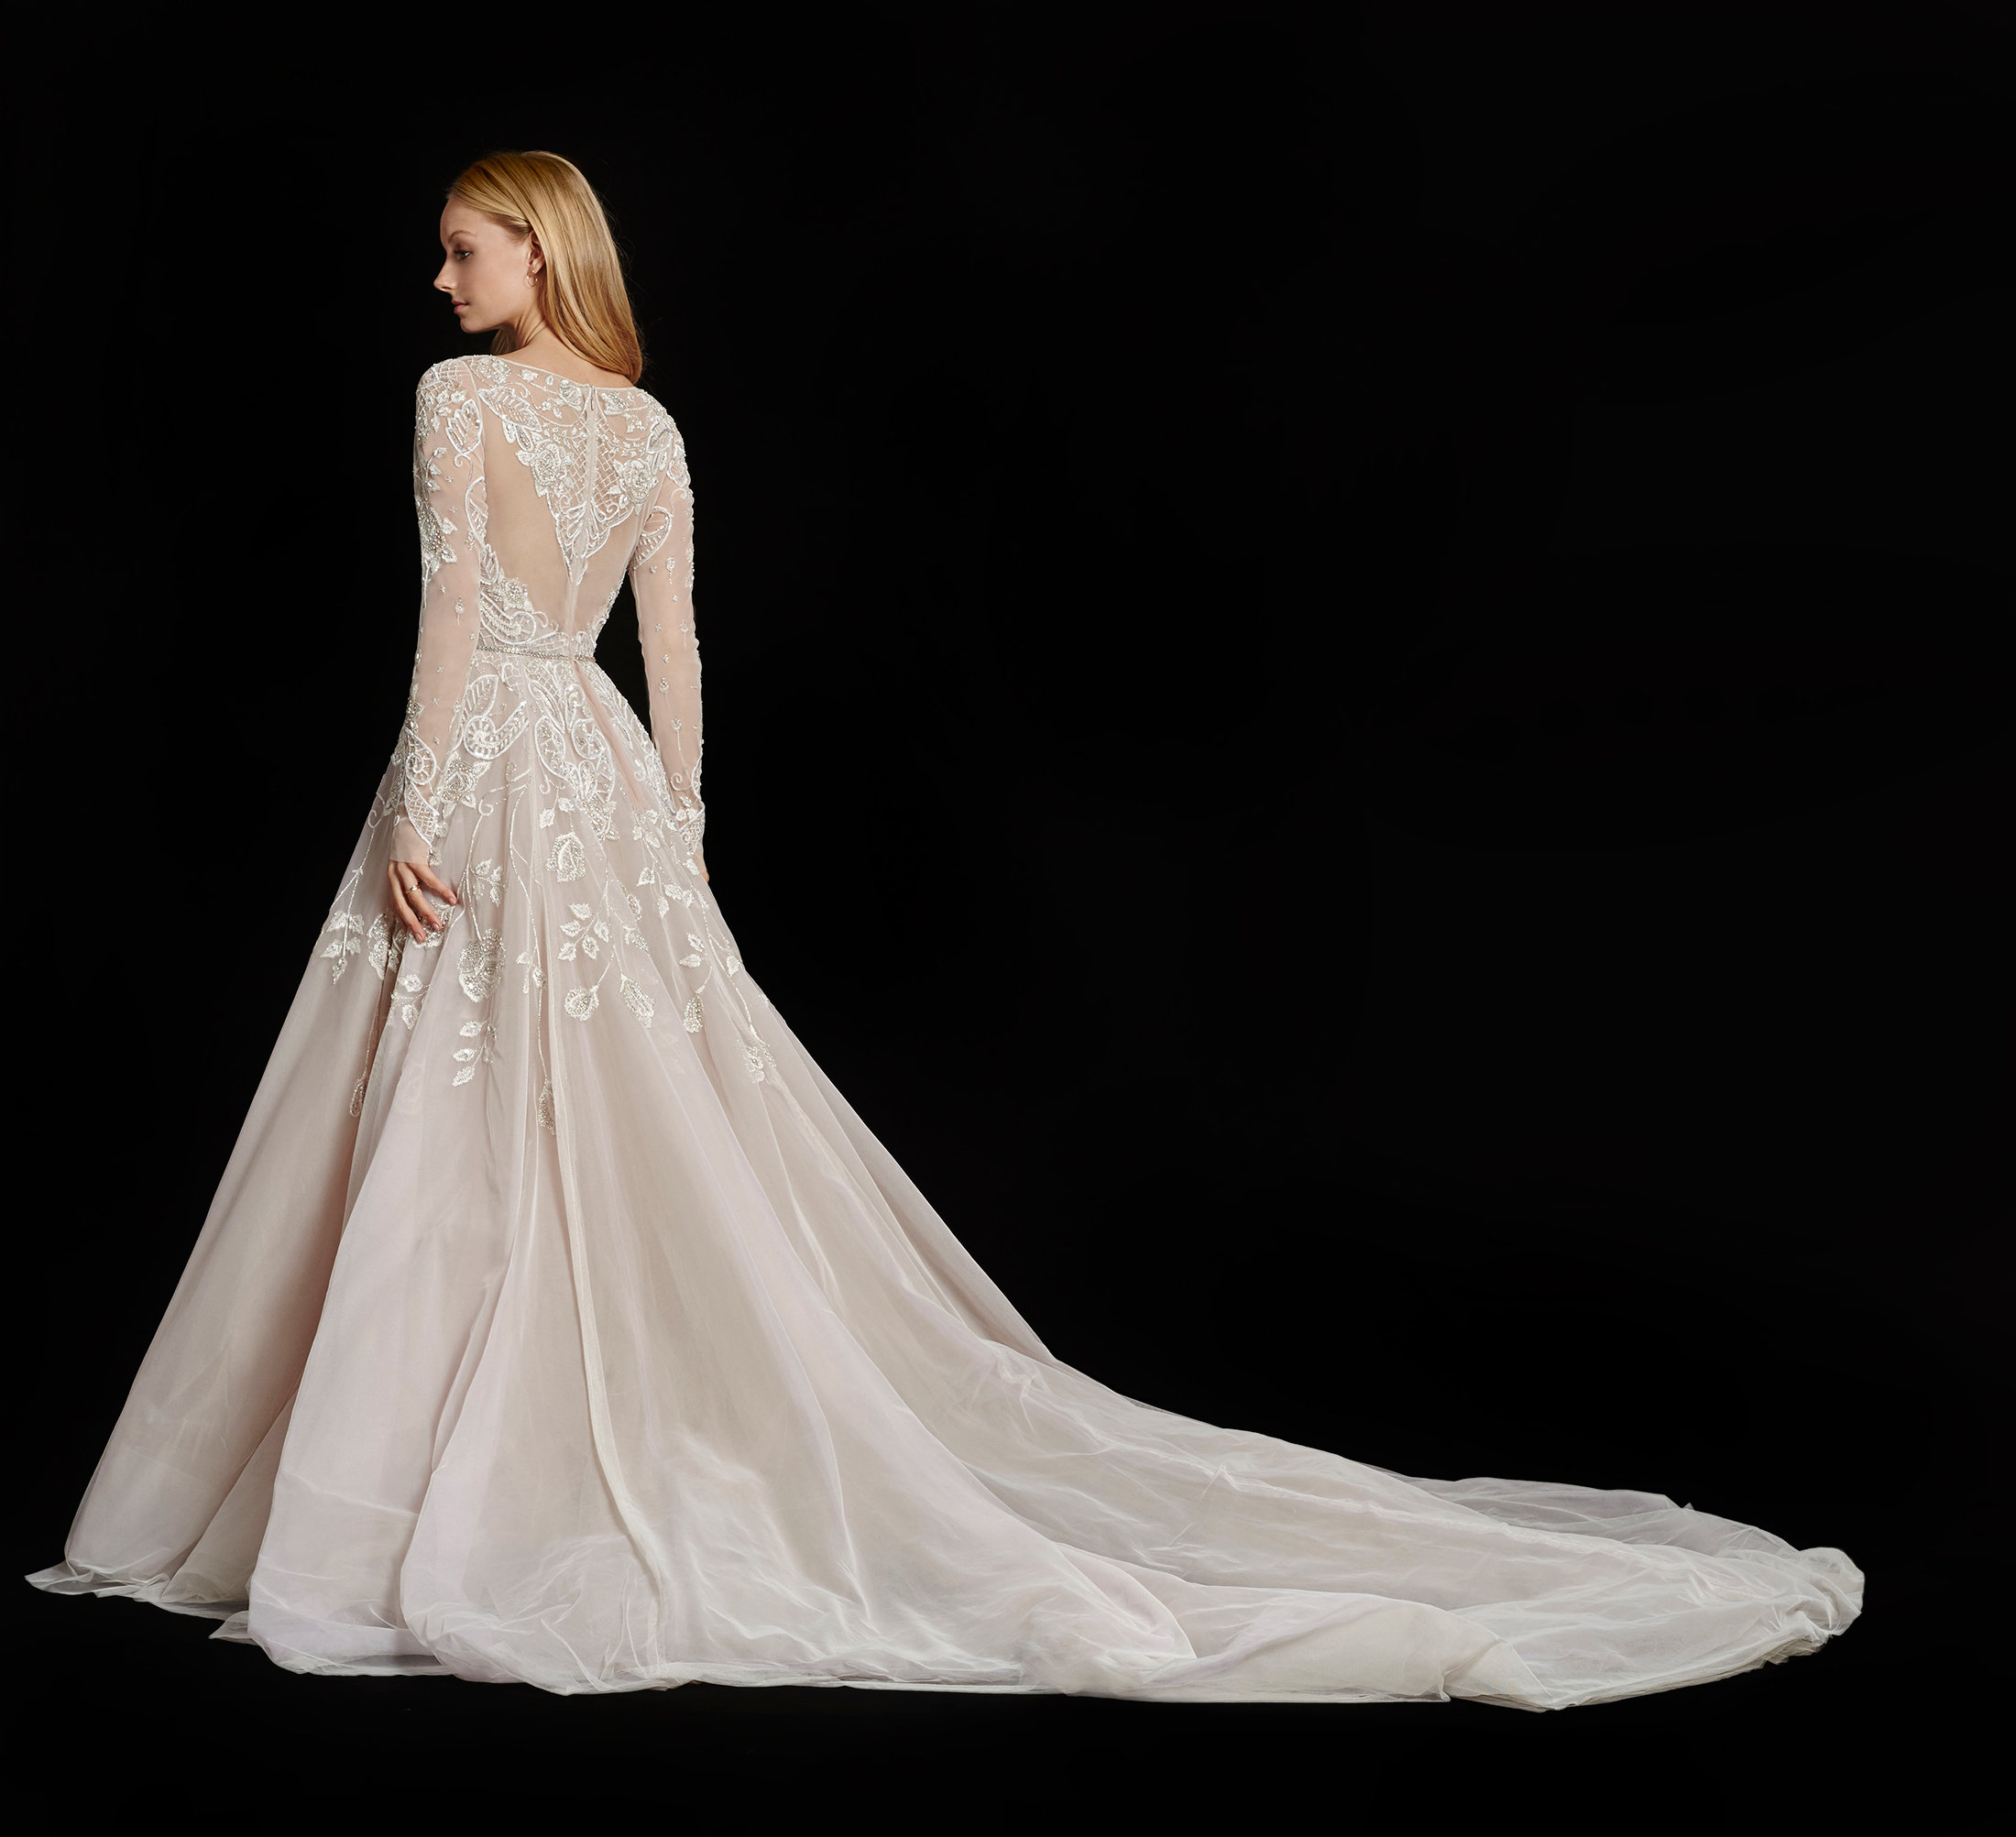 Bridal Gowns And Wedding Dresses By JLM Couture Style 6600 - Used Hayley Paige Wedding Dress